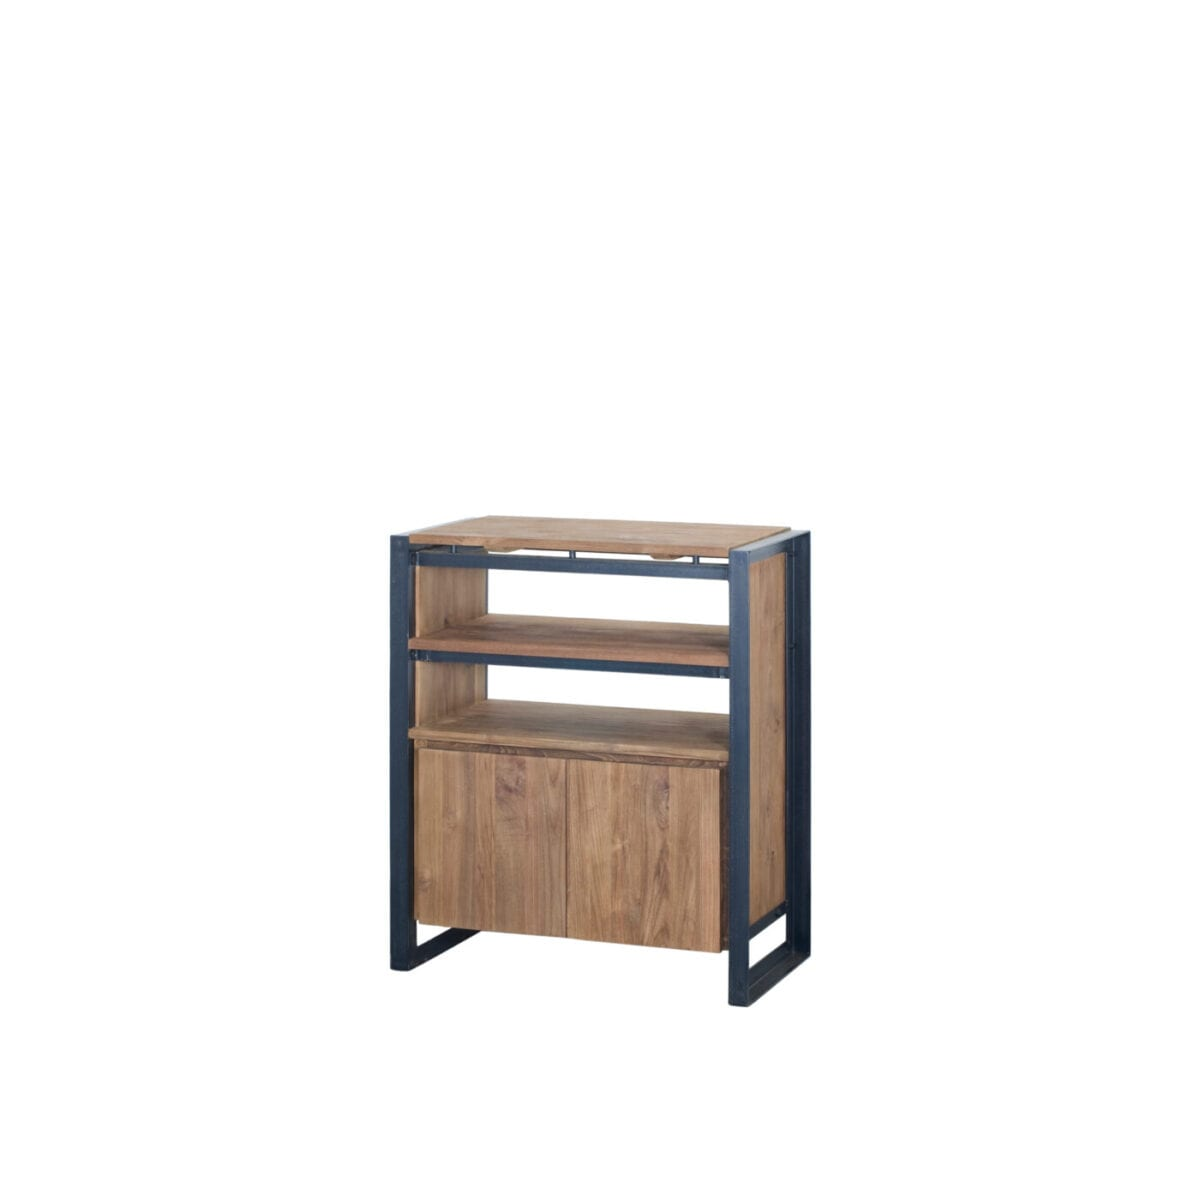 Inject Warmth Into Your Home With Reclaimed Wood Wall: D-Bodhi Fendy Sideboard (Shelf) • BluBambu